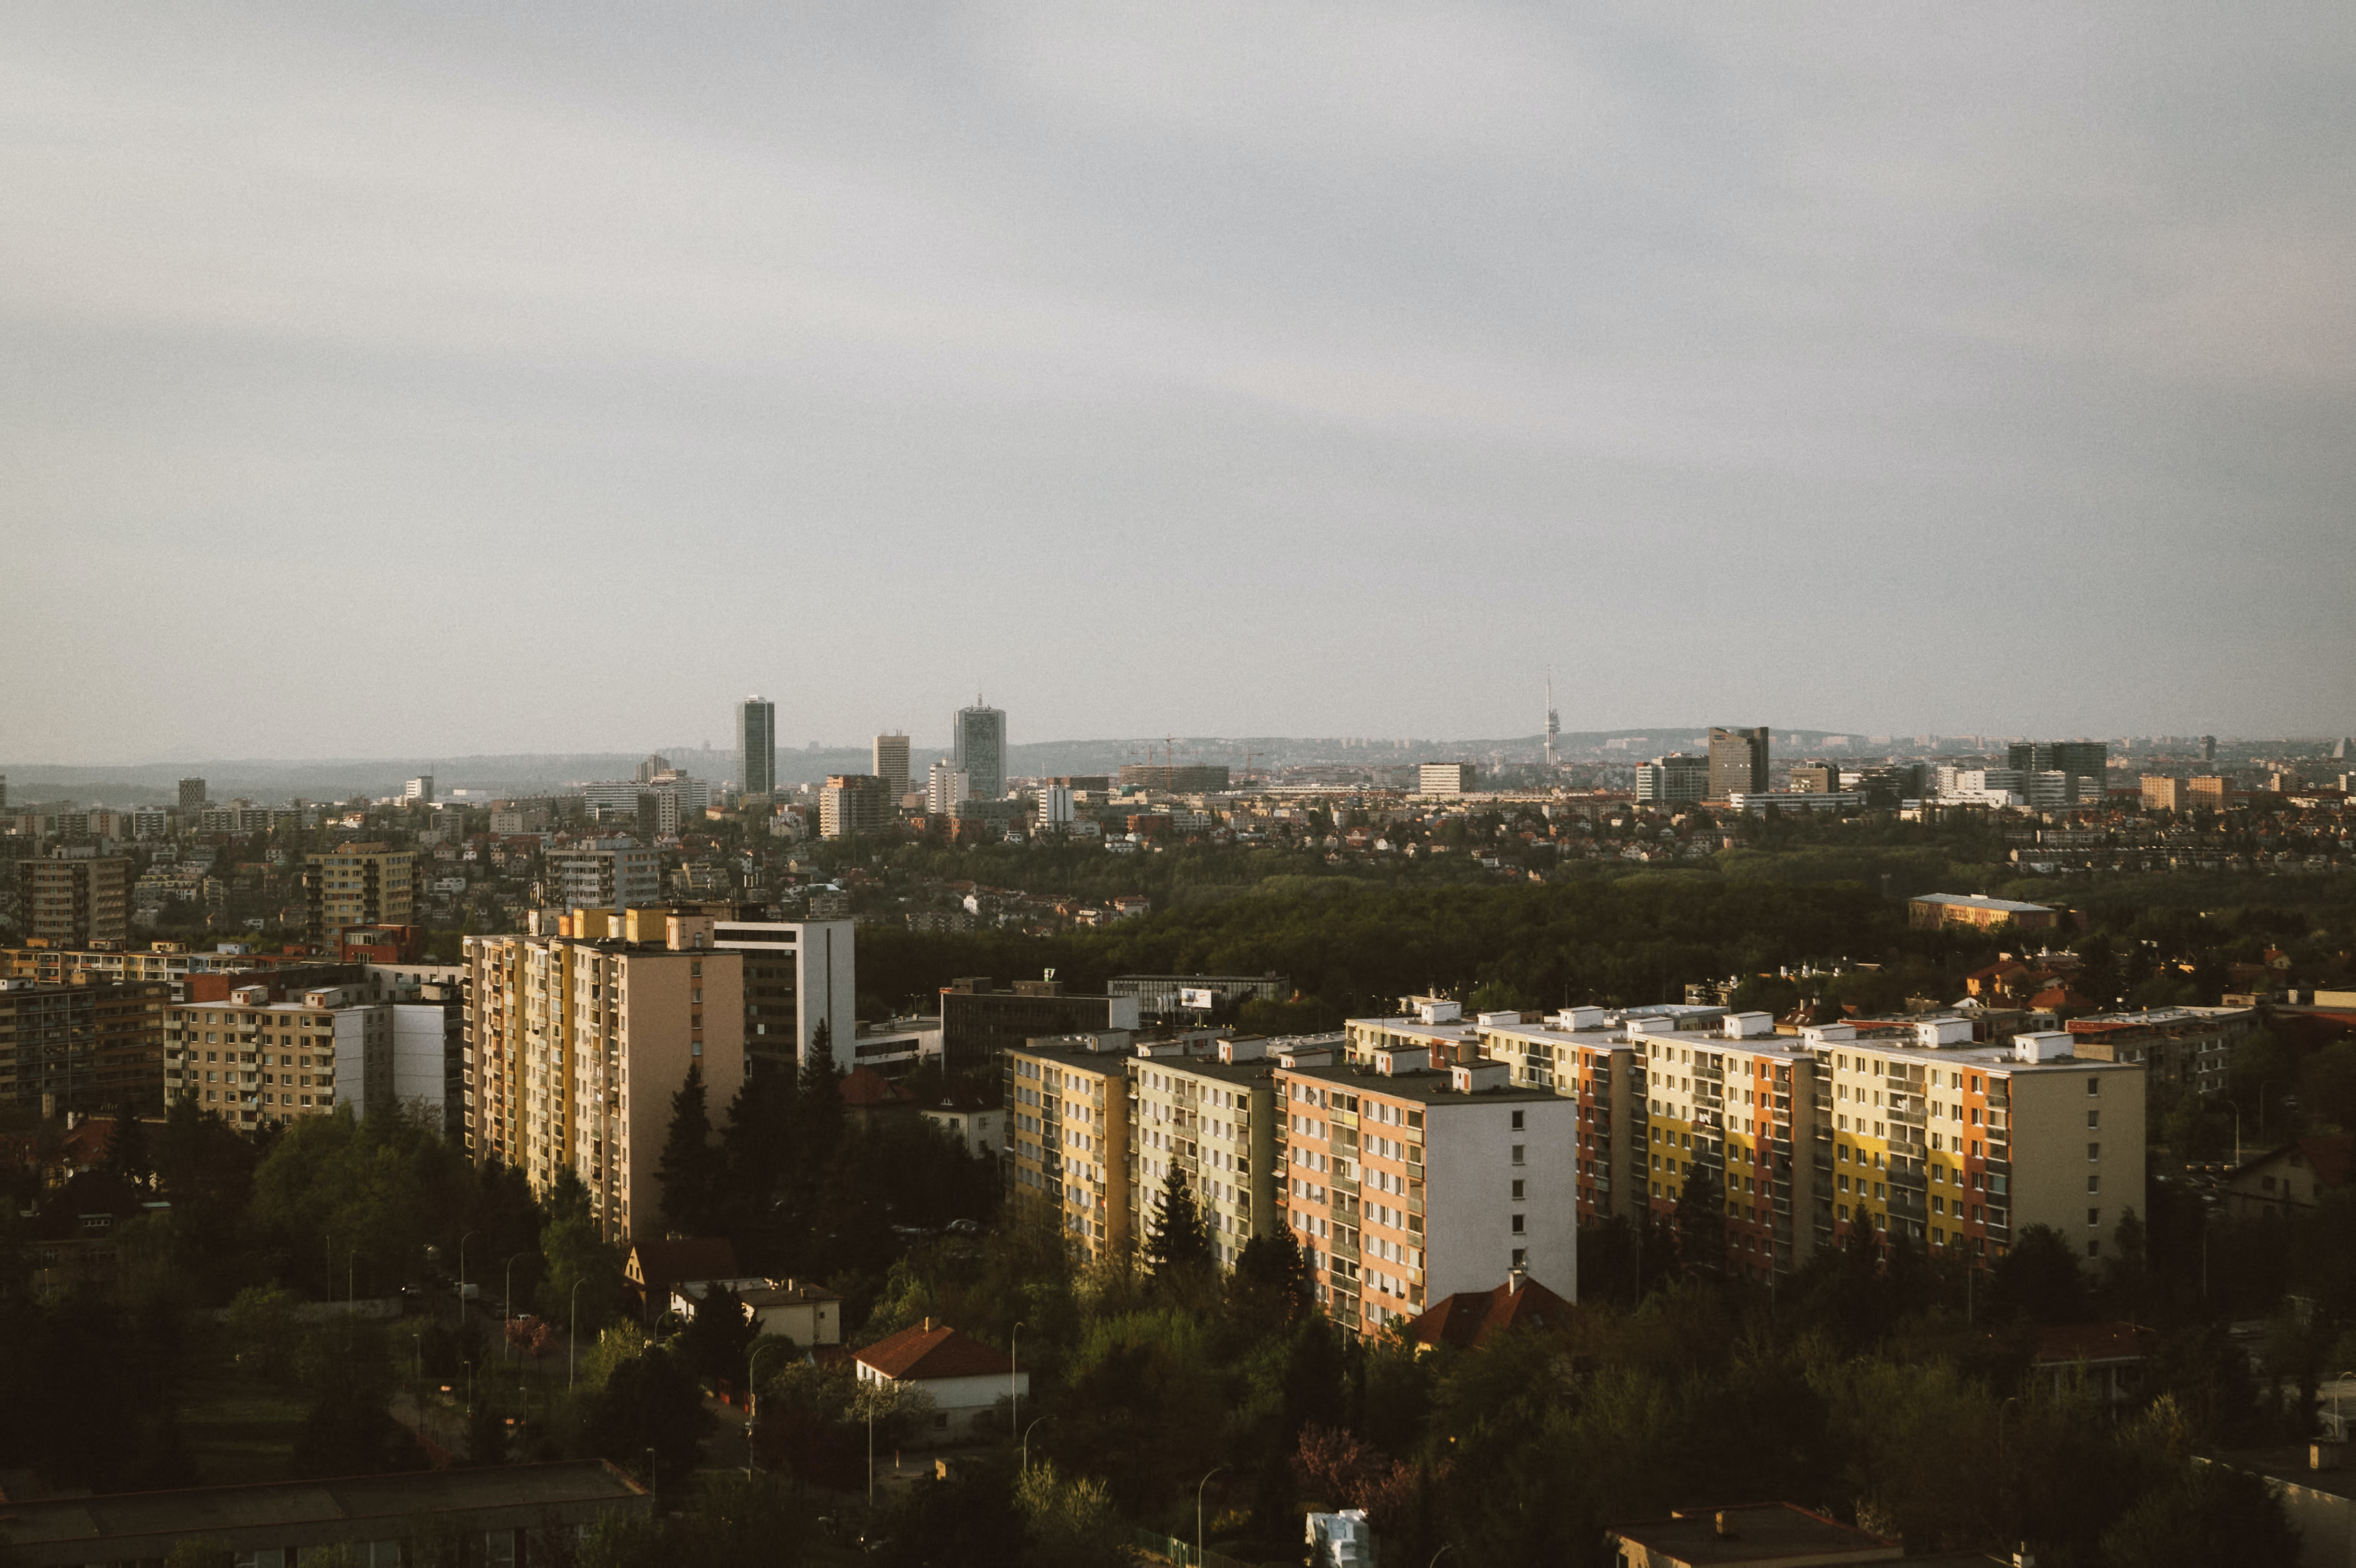 Tower blocks and skyscrapers in a Central European city